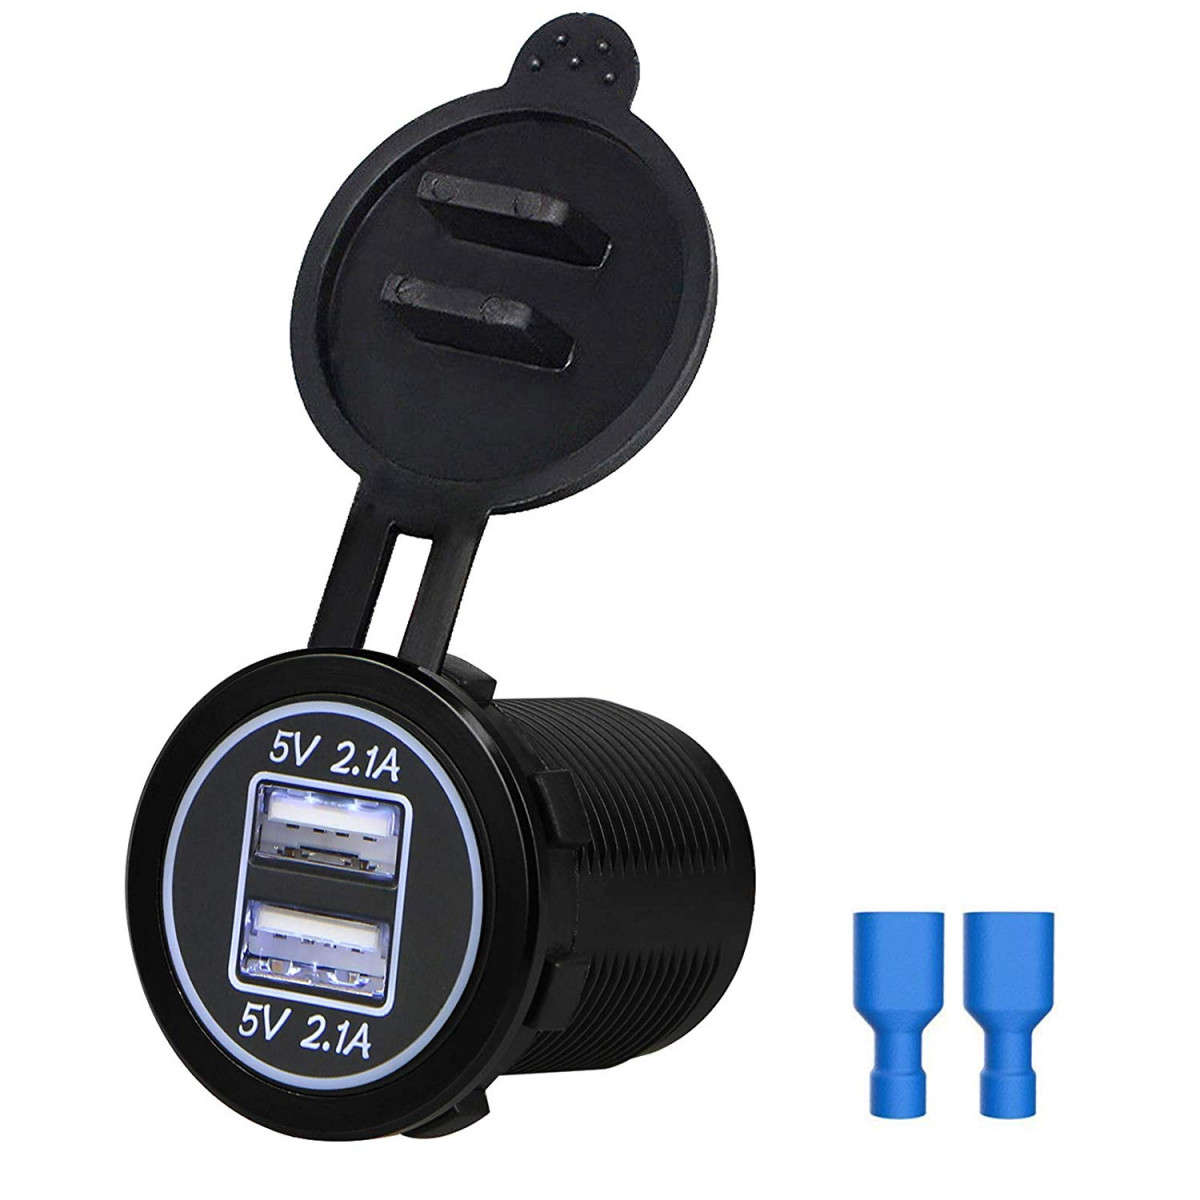 Waterproof USB Charger 12V to 5V